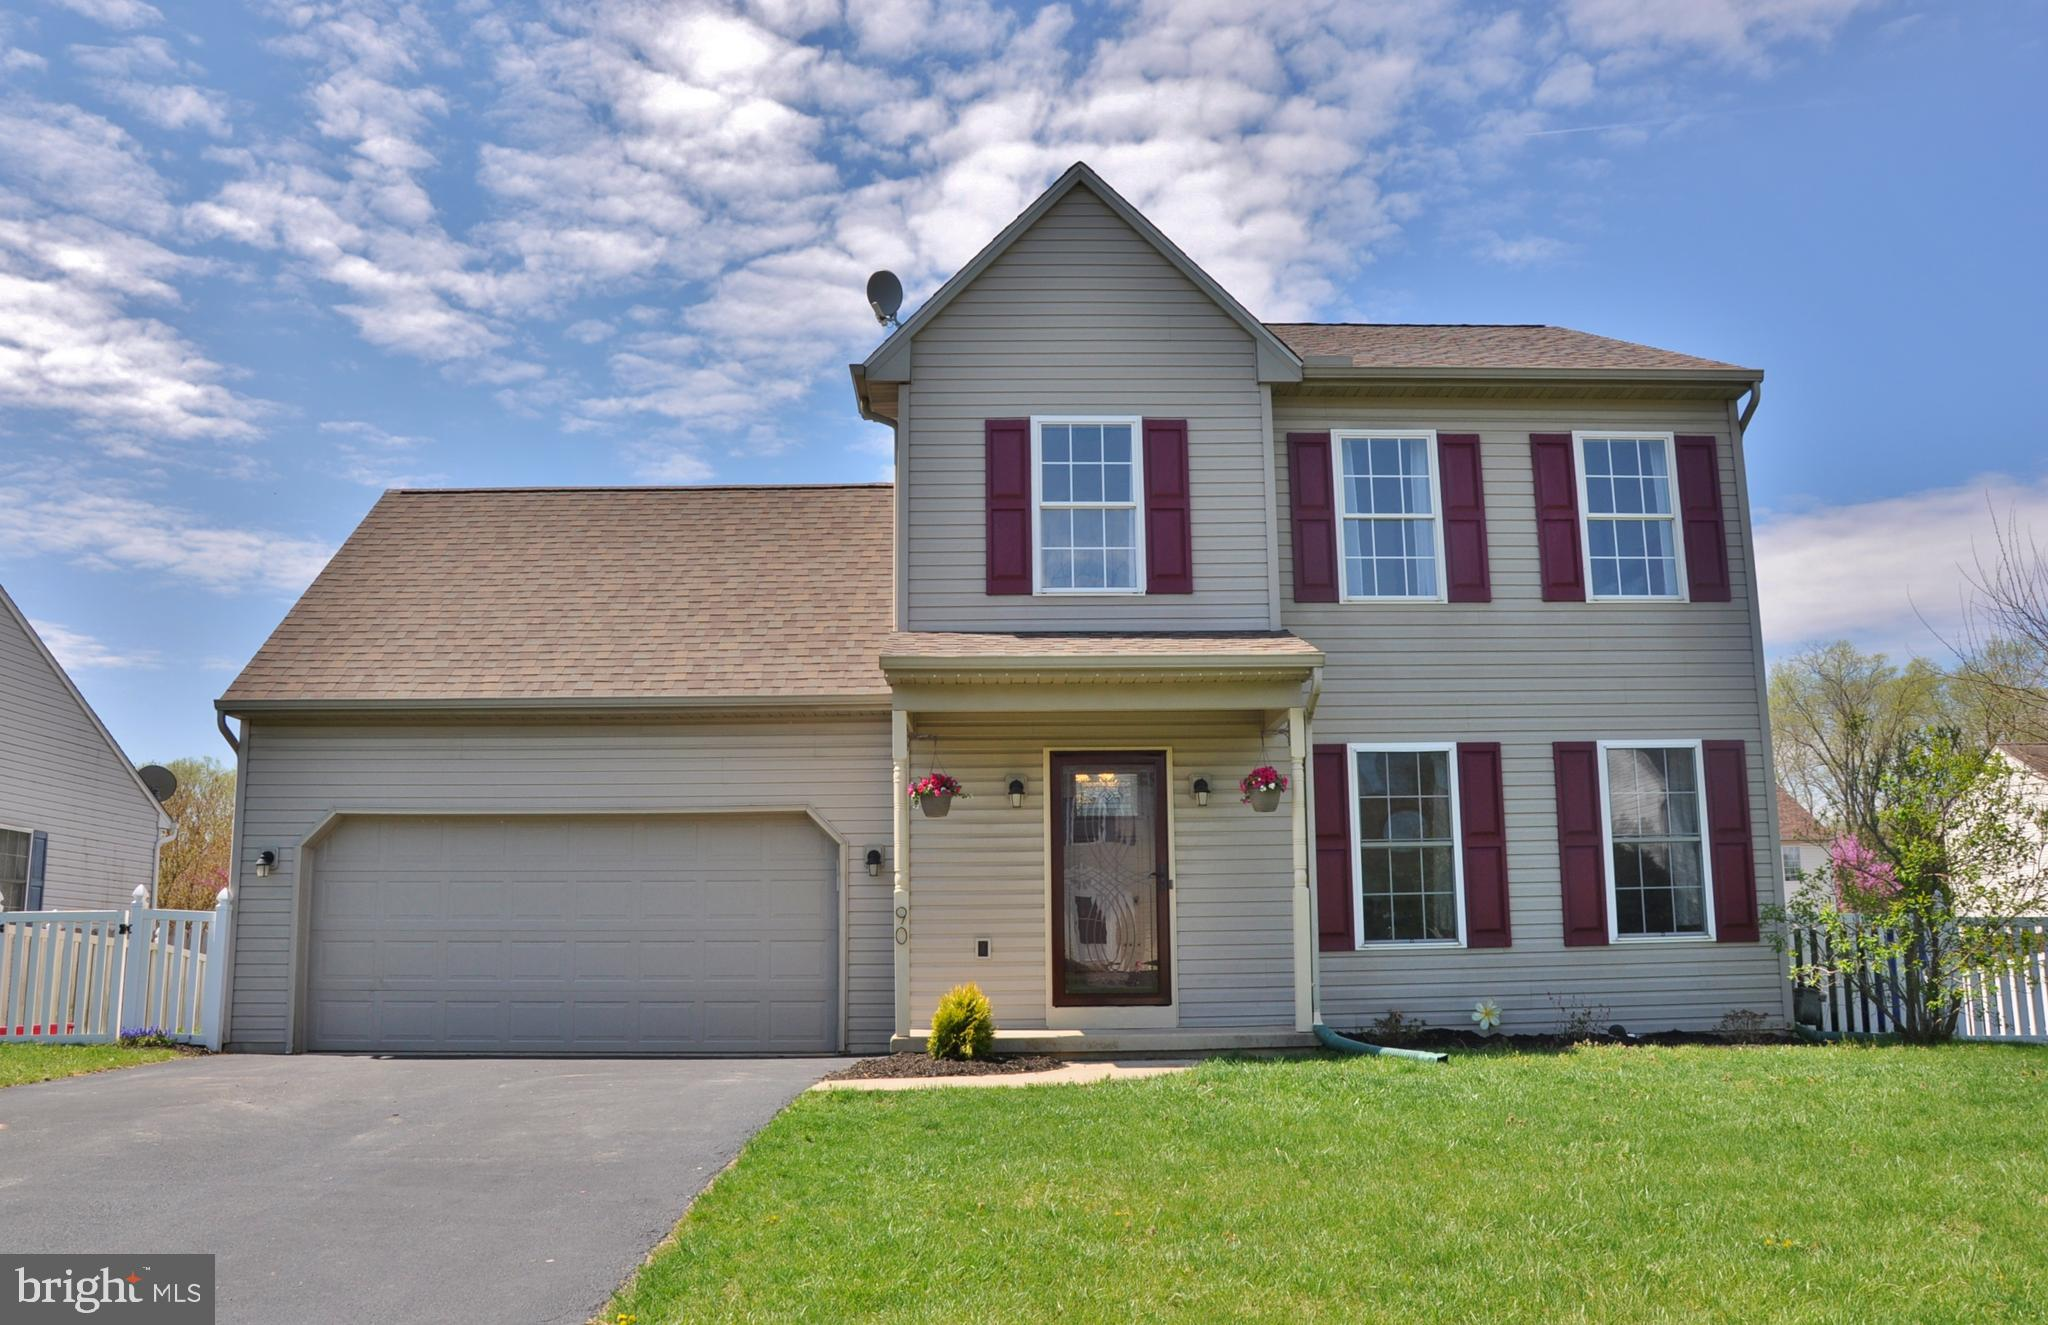 90 SILVER MAPLE COURT, MOUNT WOLF, PA 17347